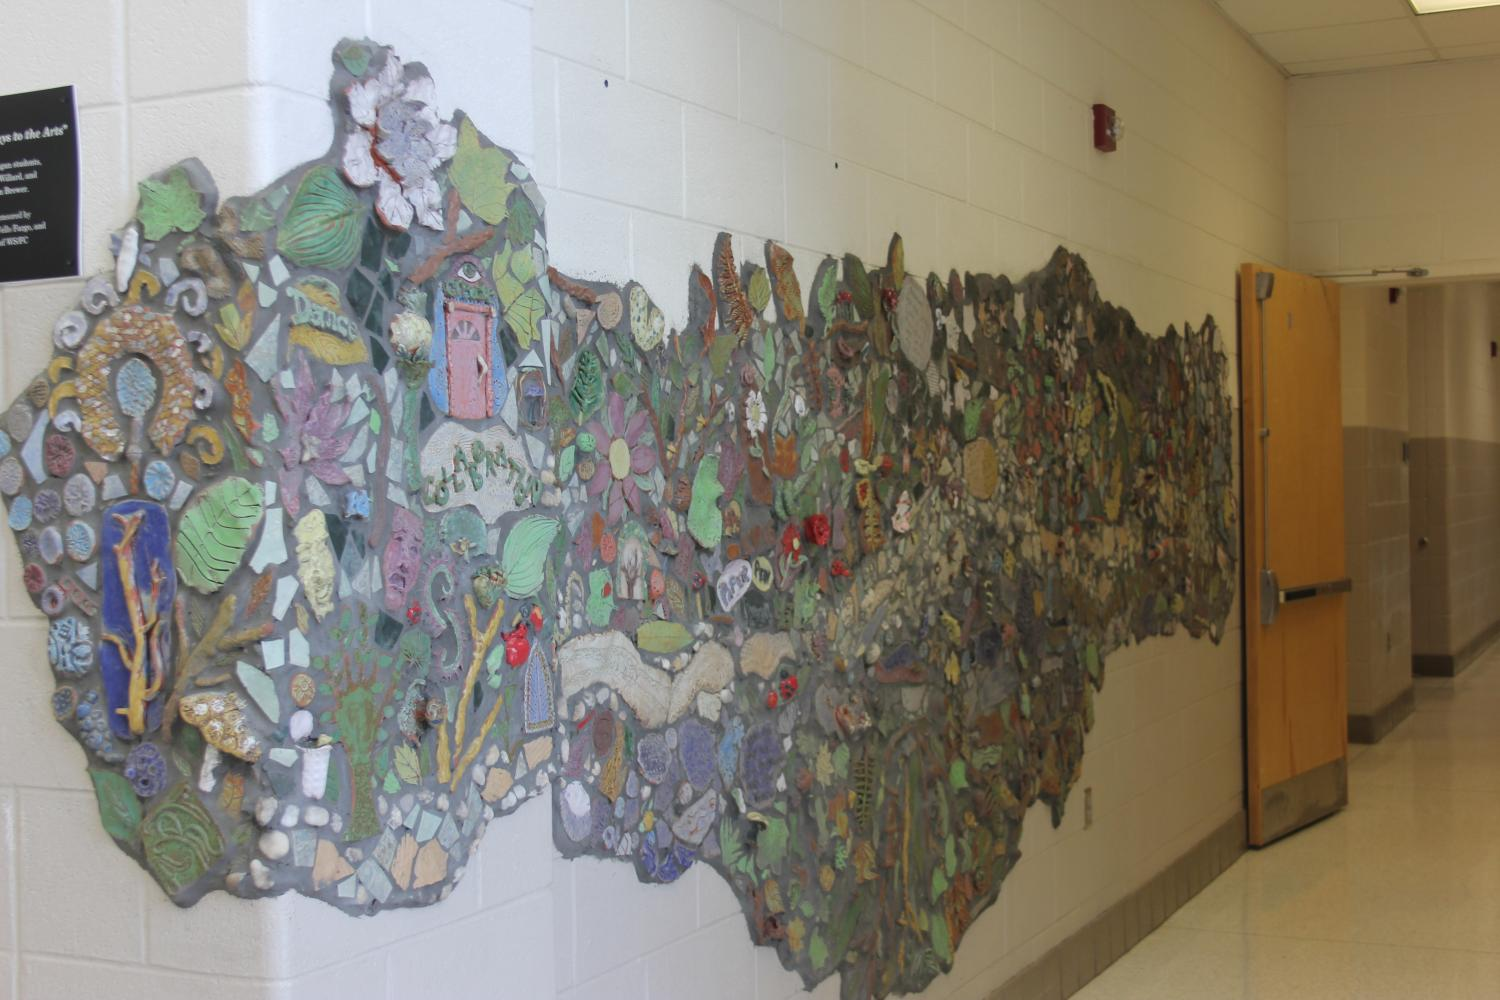 'Pathways and Portals to the Arts' displays themes of water, land, paths, greenery, and portals. The display was created by the art classes.